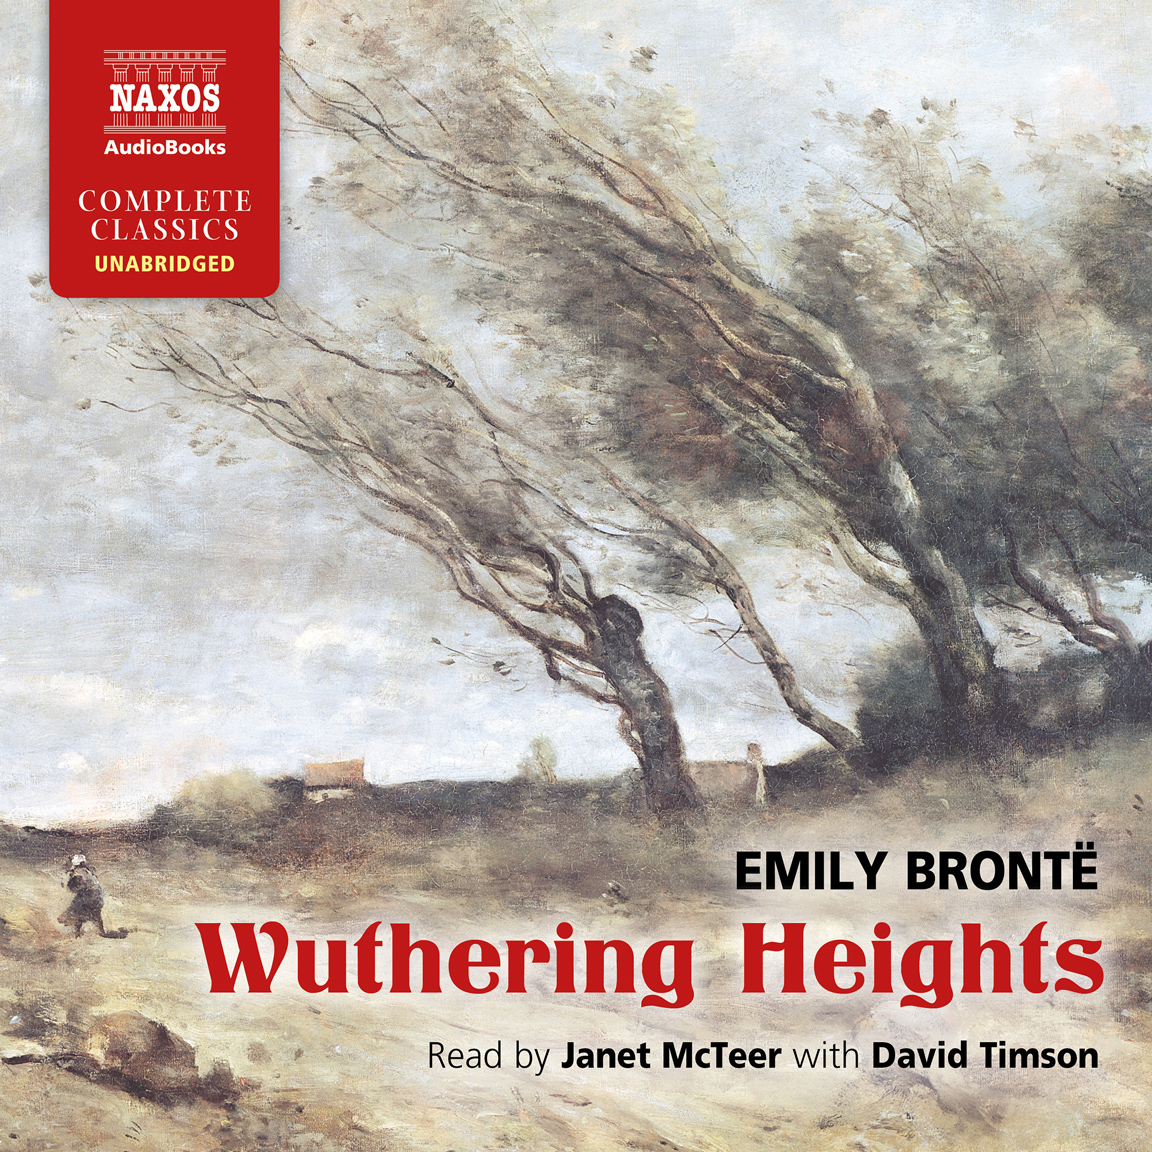 Wuthering Heights (unabridged)